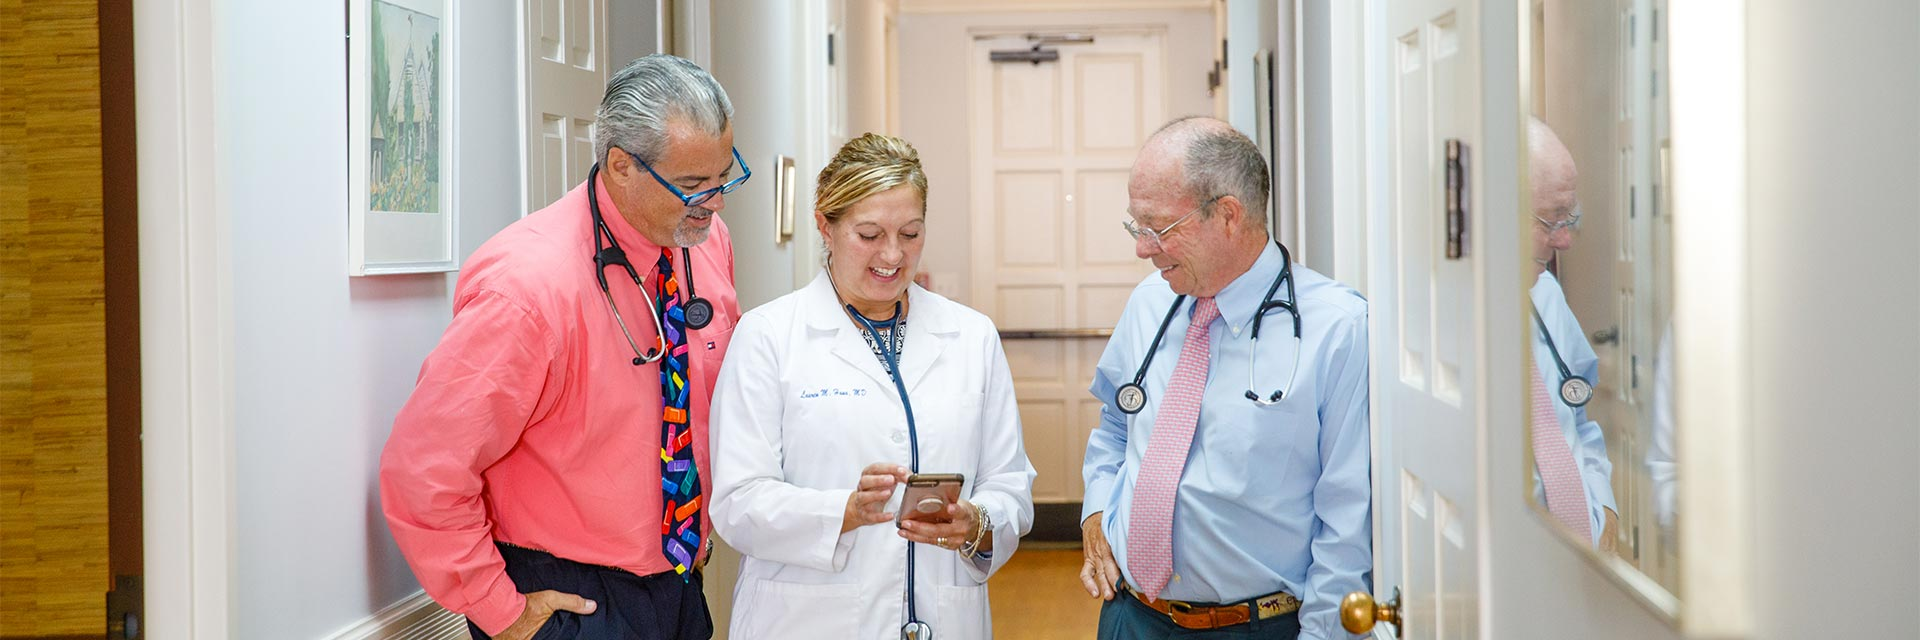 three doctors - Dr. James, Dr. Hana and Dr. Ervin